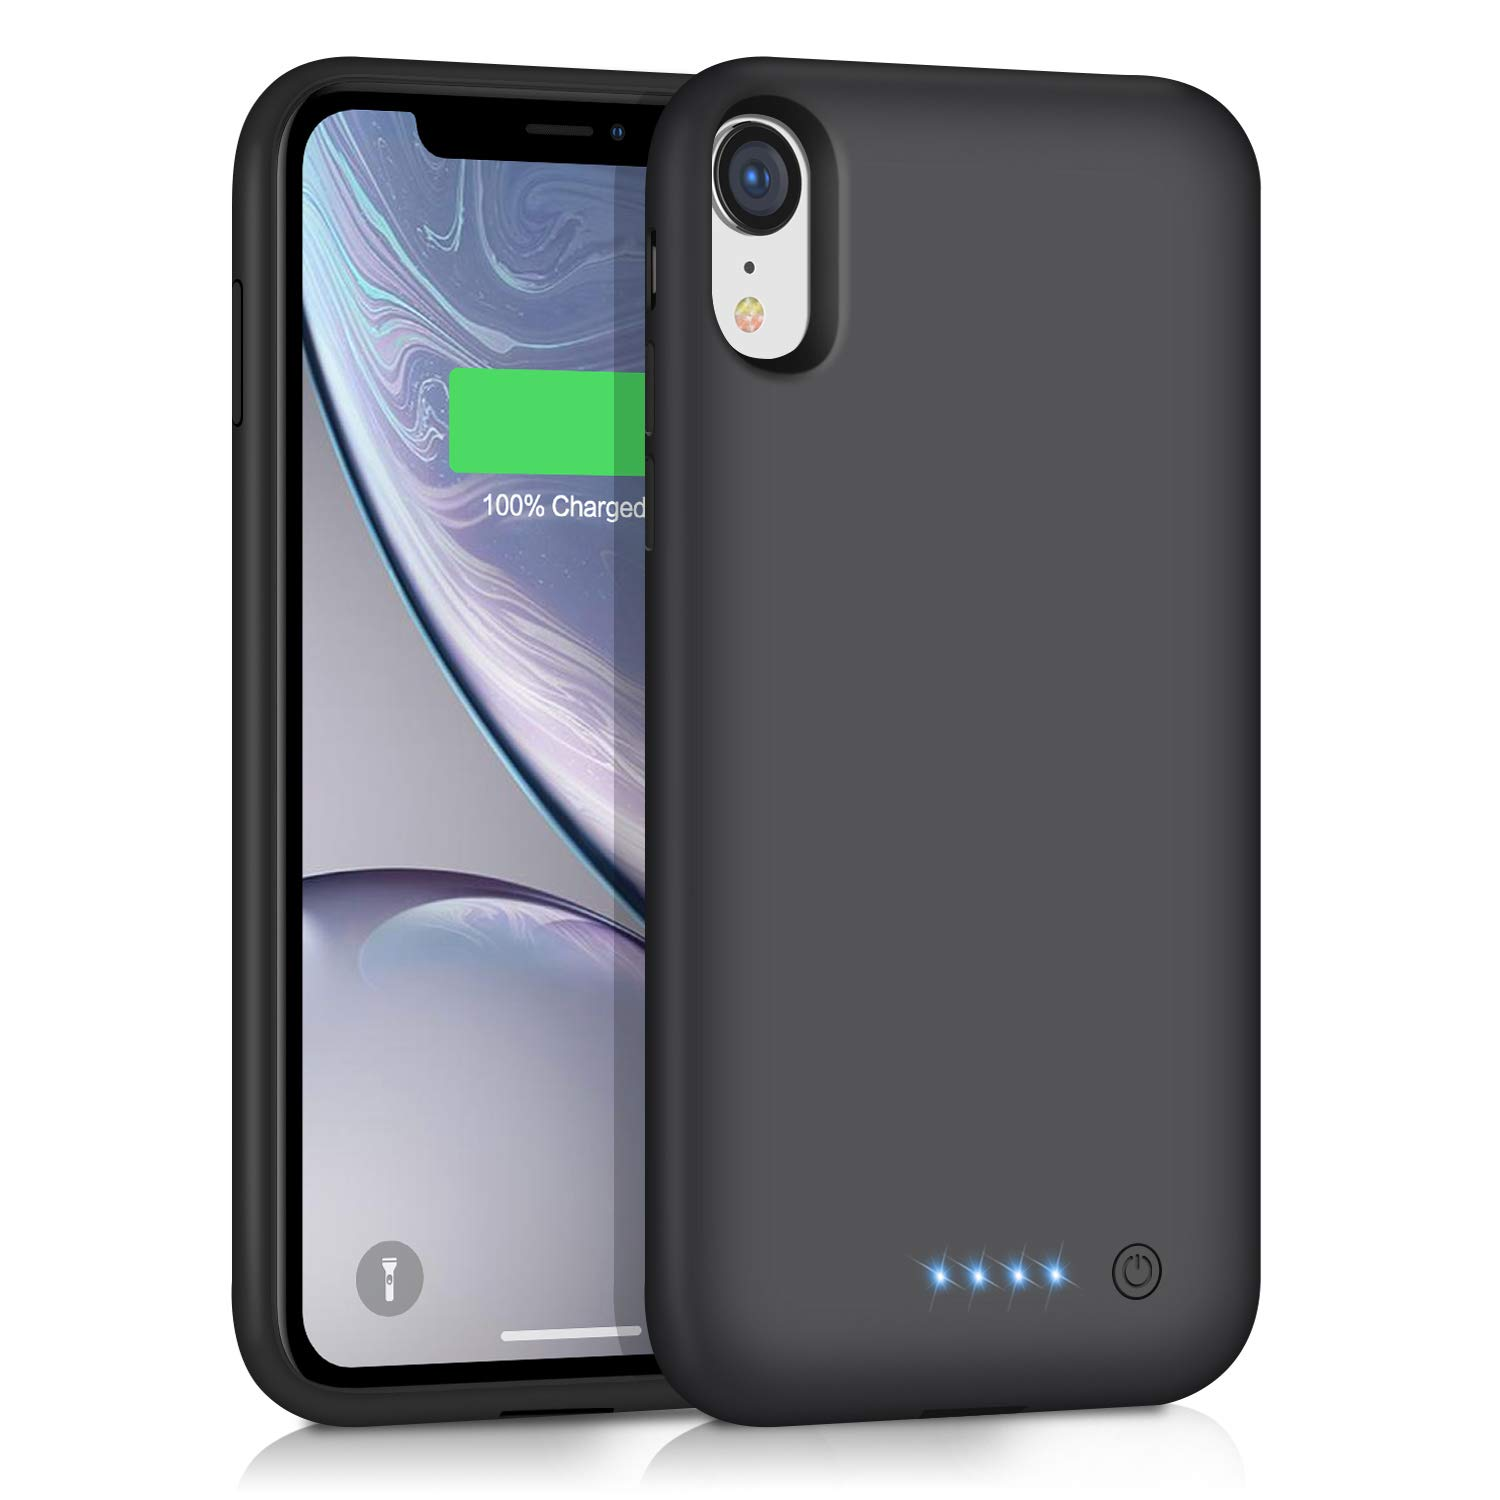 Funda Con Bateria de 6800mah para Apple Iphone Xr EKRIST [7TVP2JJP]